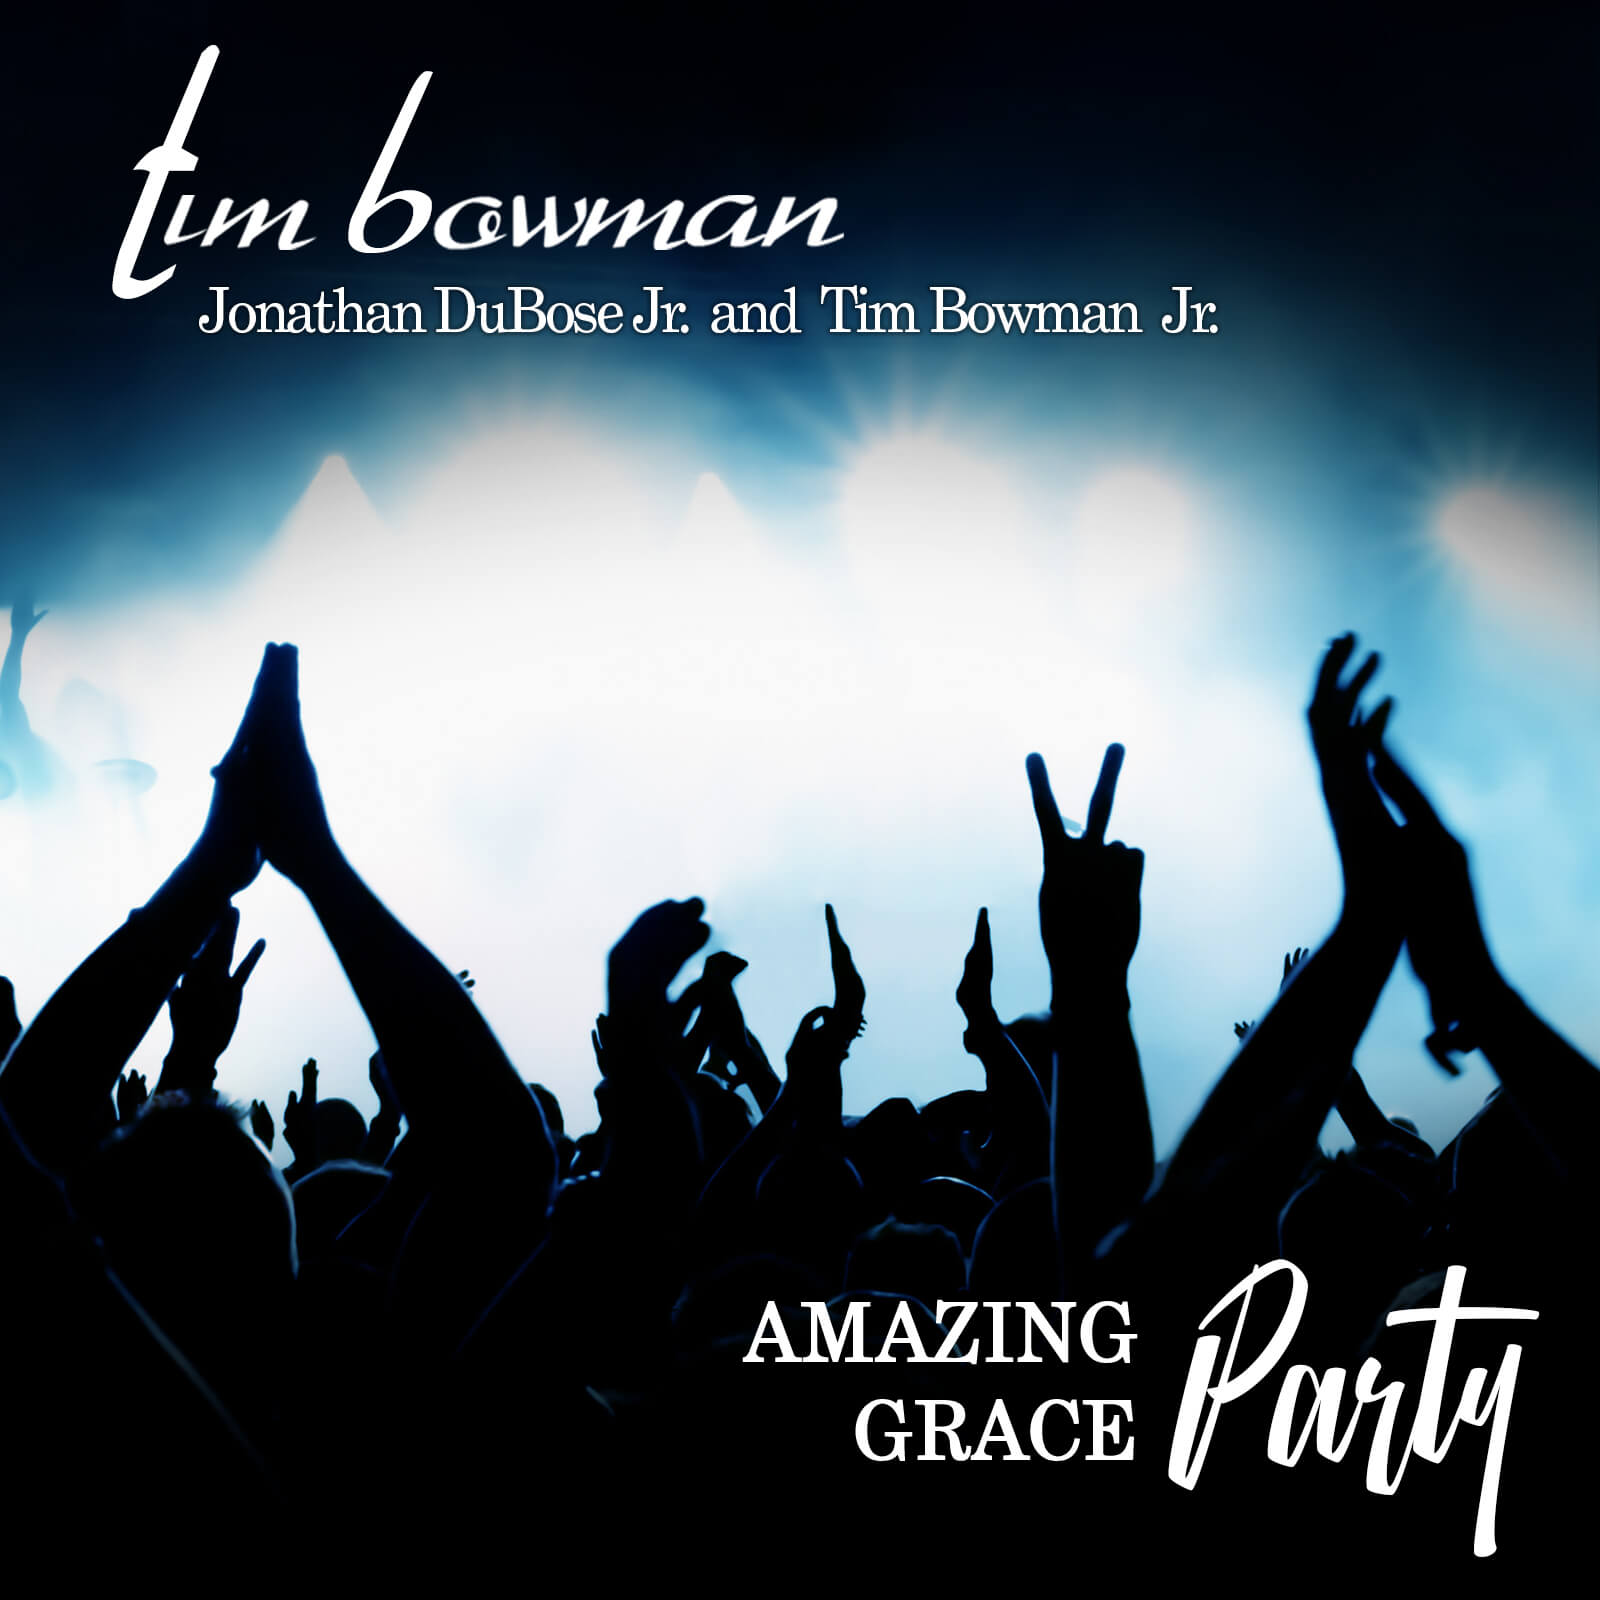 Amazing Grace Party, New Single from Tim Bowman